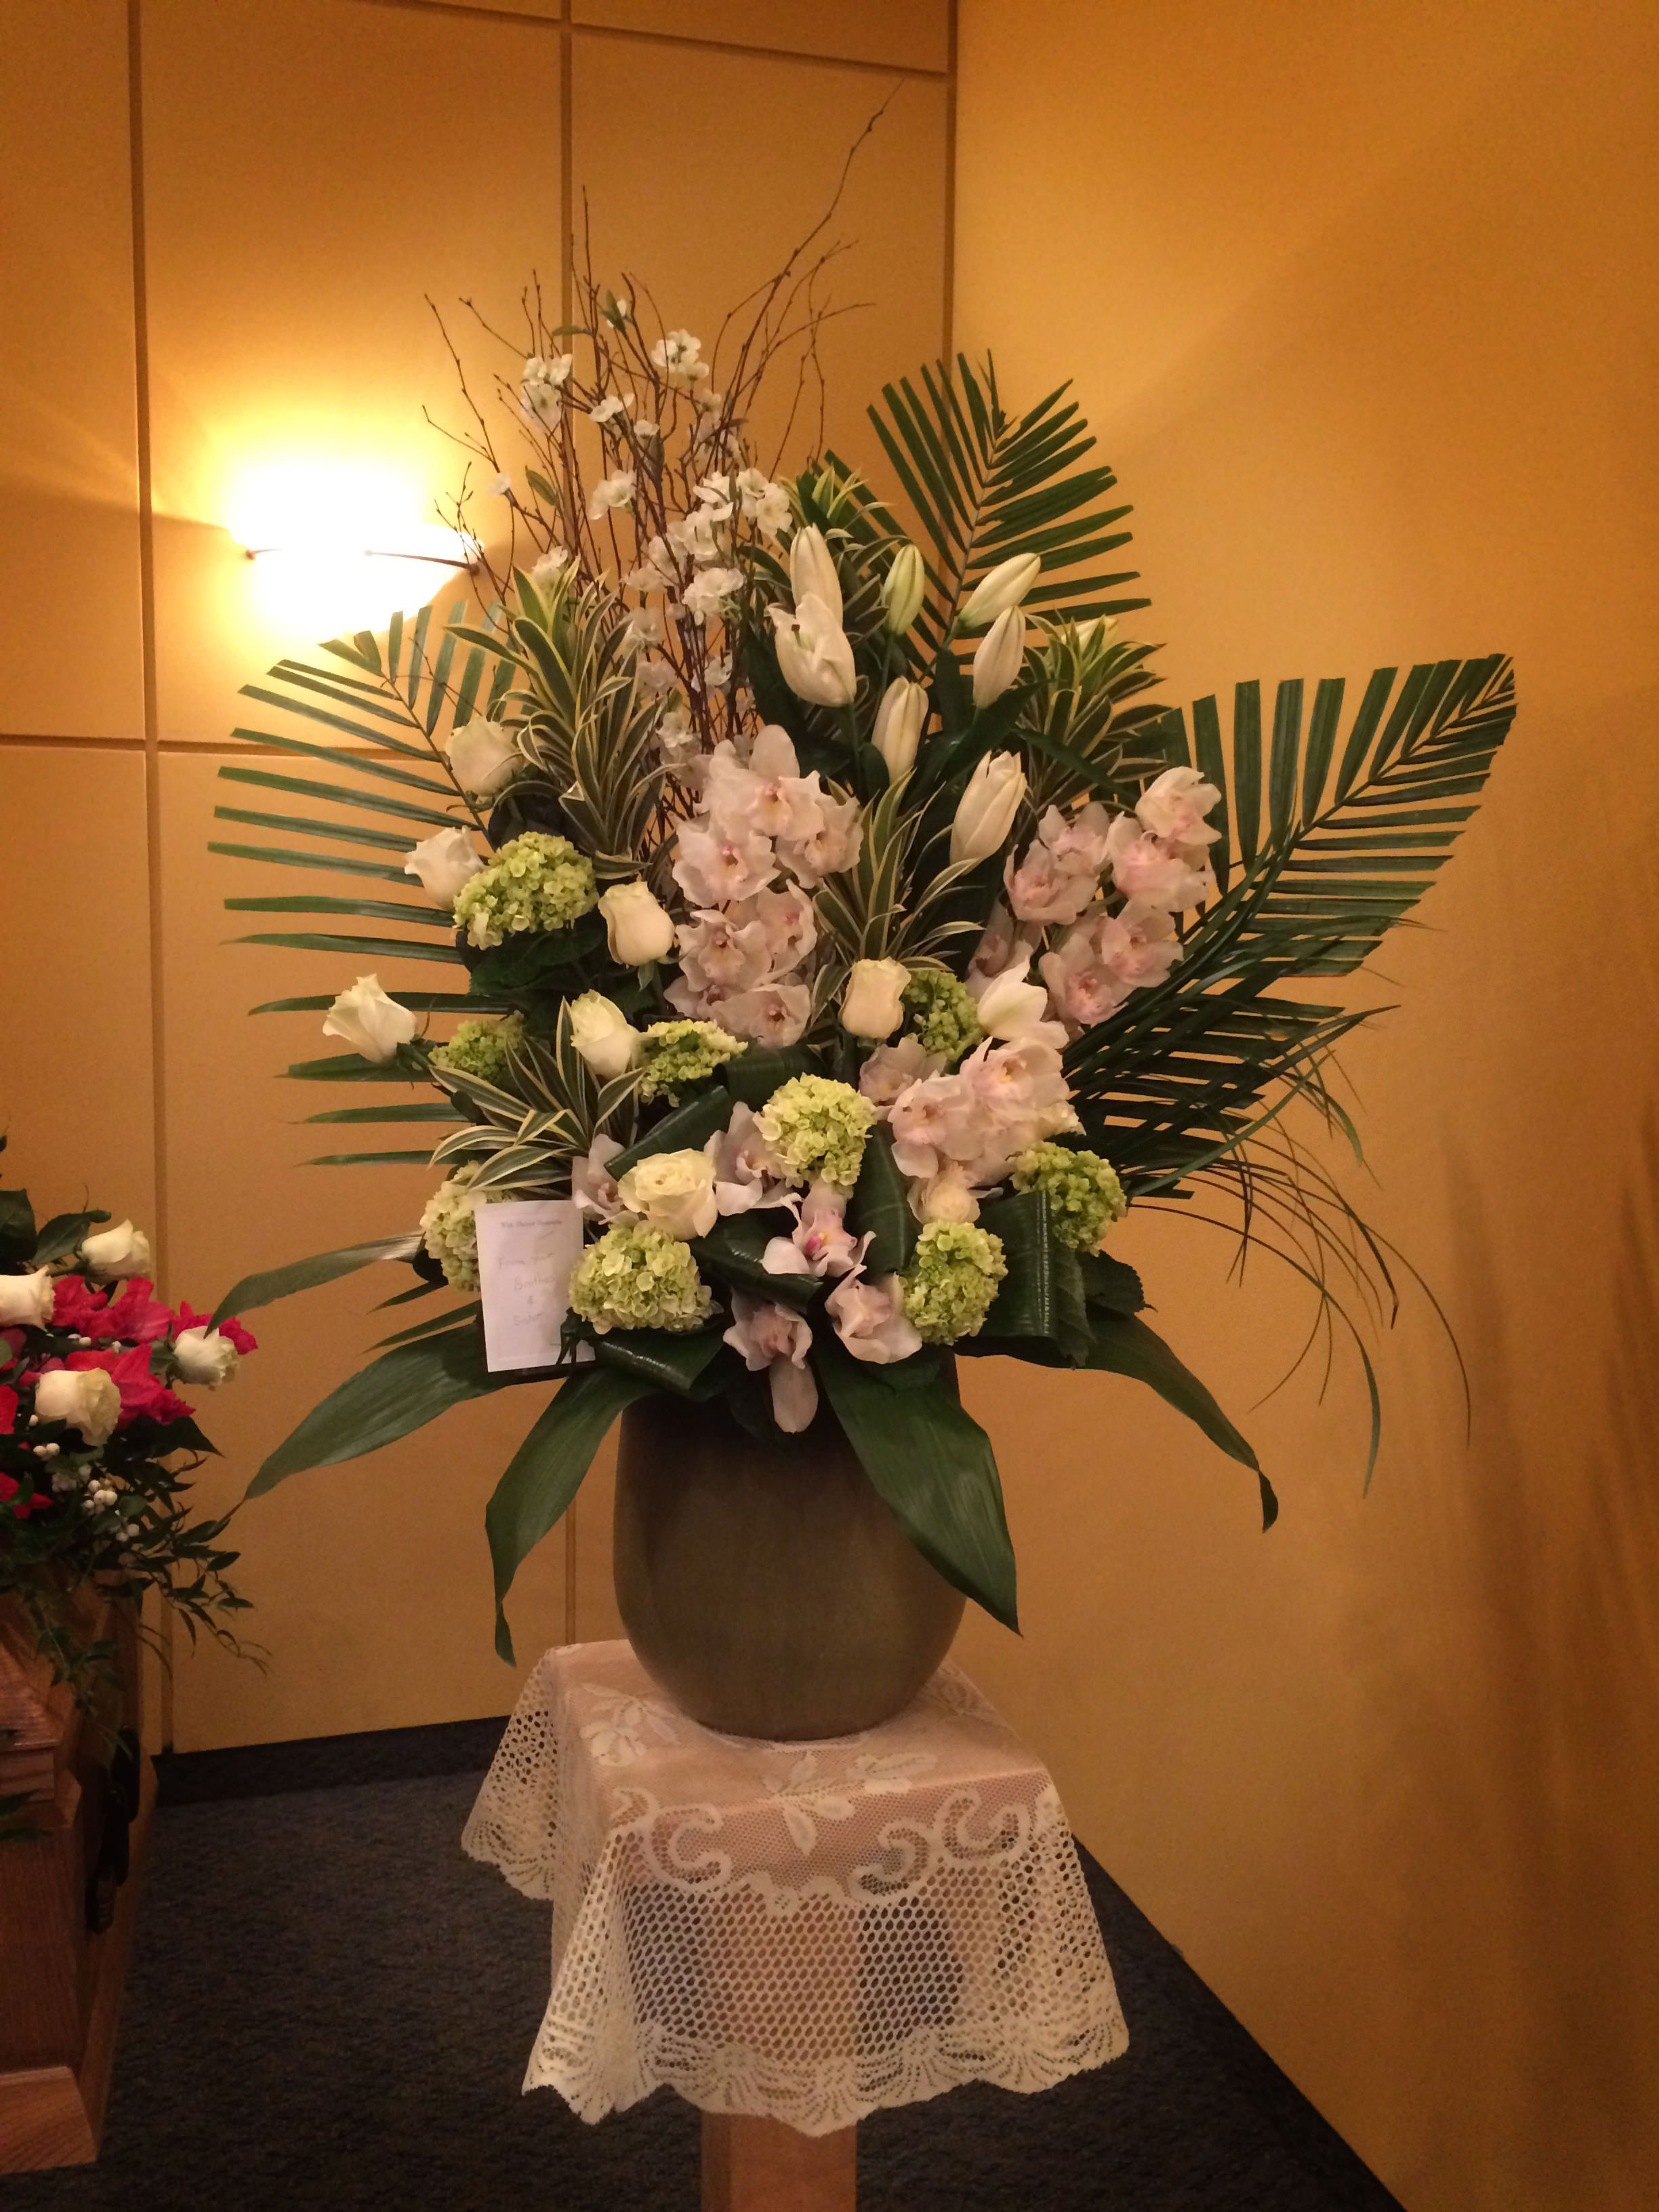 Home page floral tribute izmirmasajfo Gallery